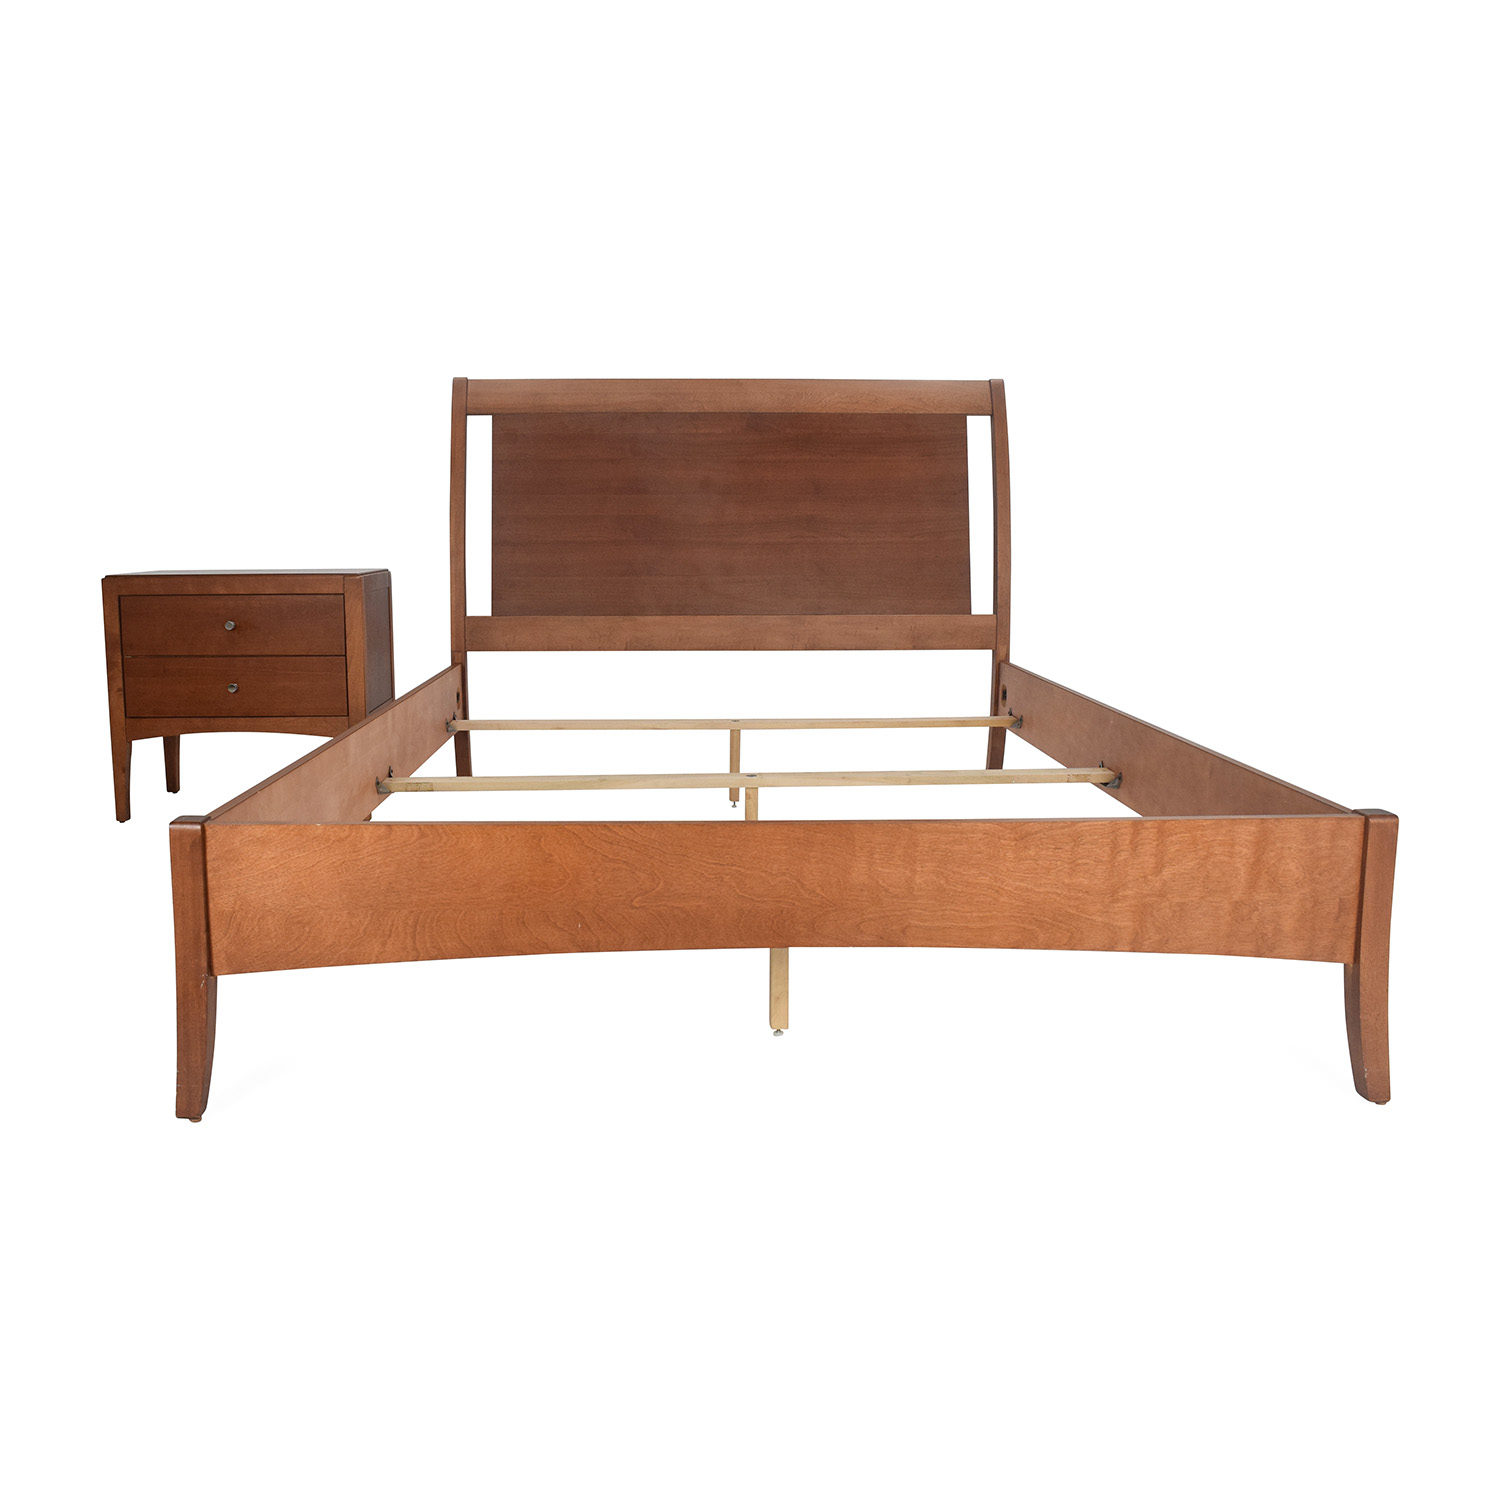 72 Off Macys Macy S Bed Frame And Matching Side Table